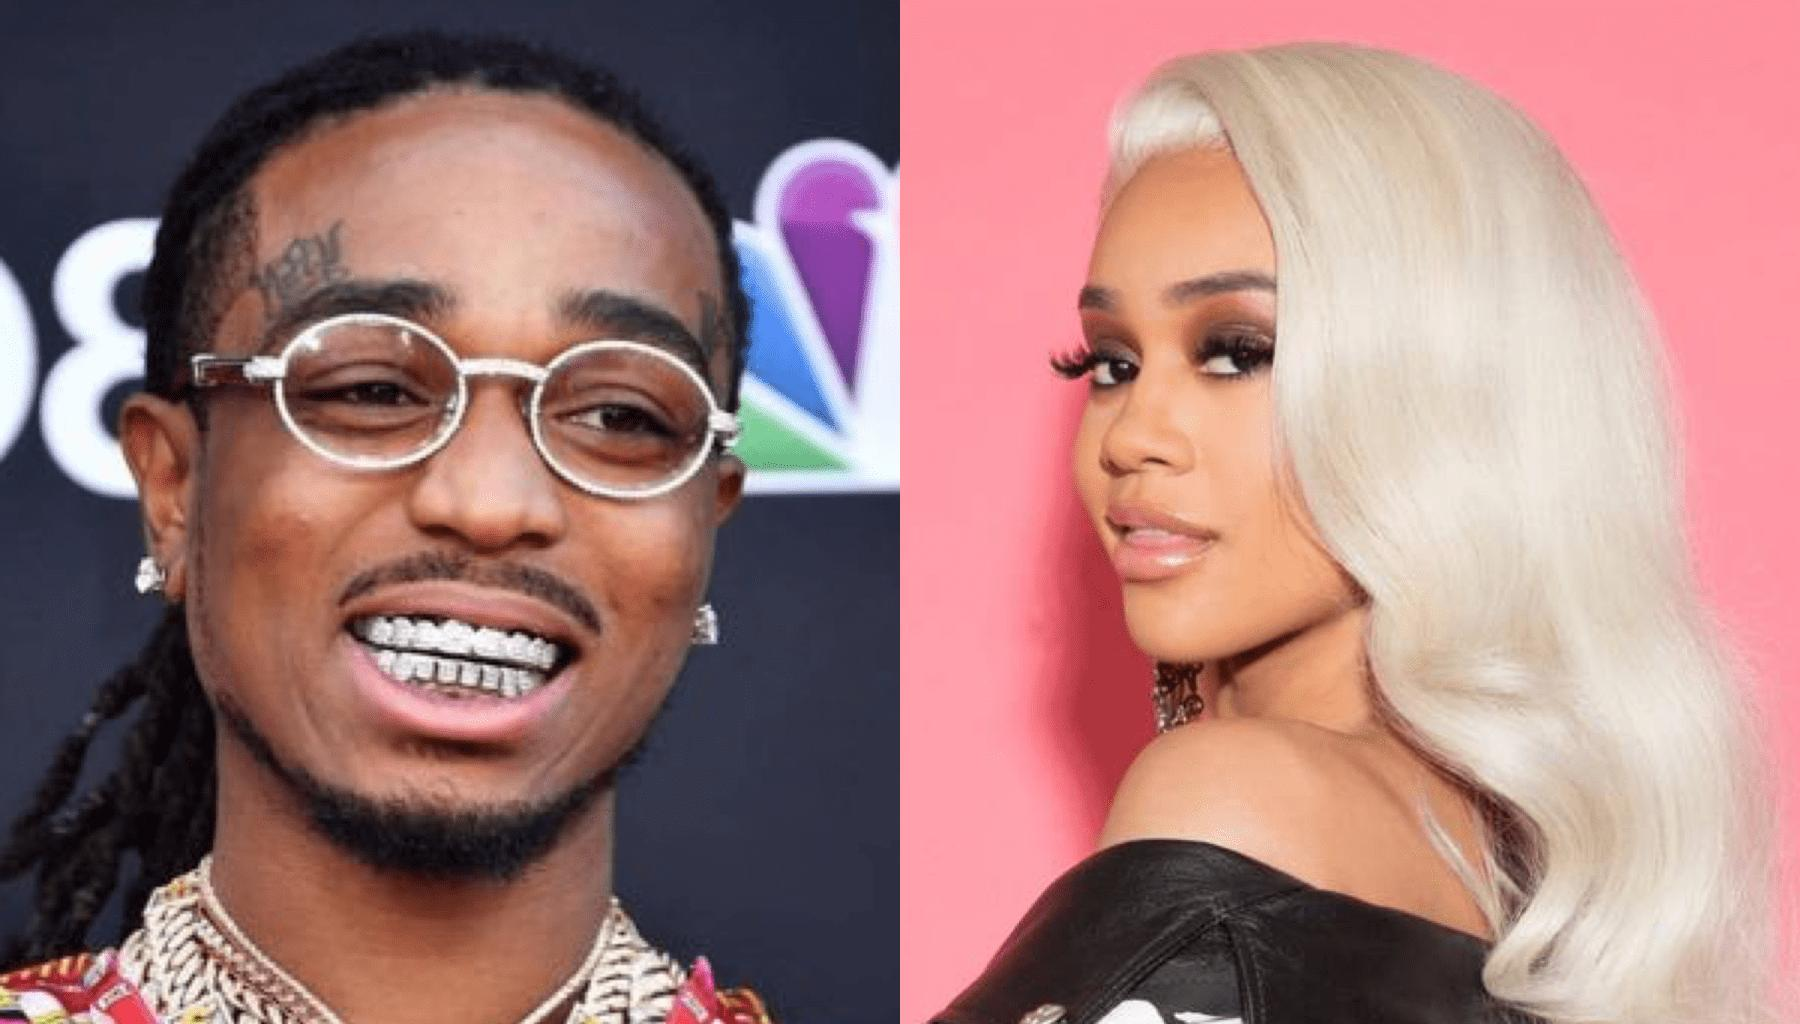 Quavo Surprises Saweetie With New Bling And She Couldn't Be More Excited